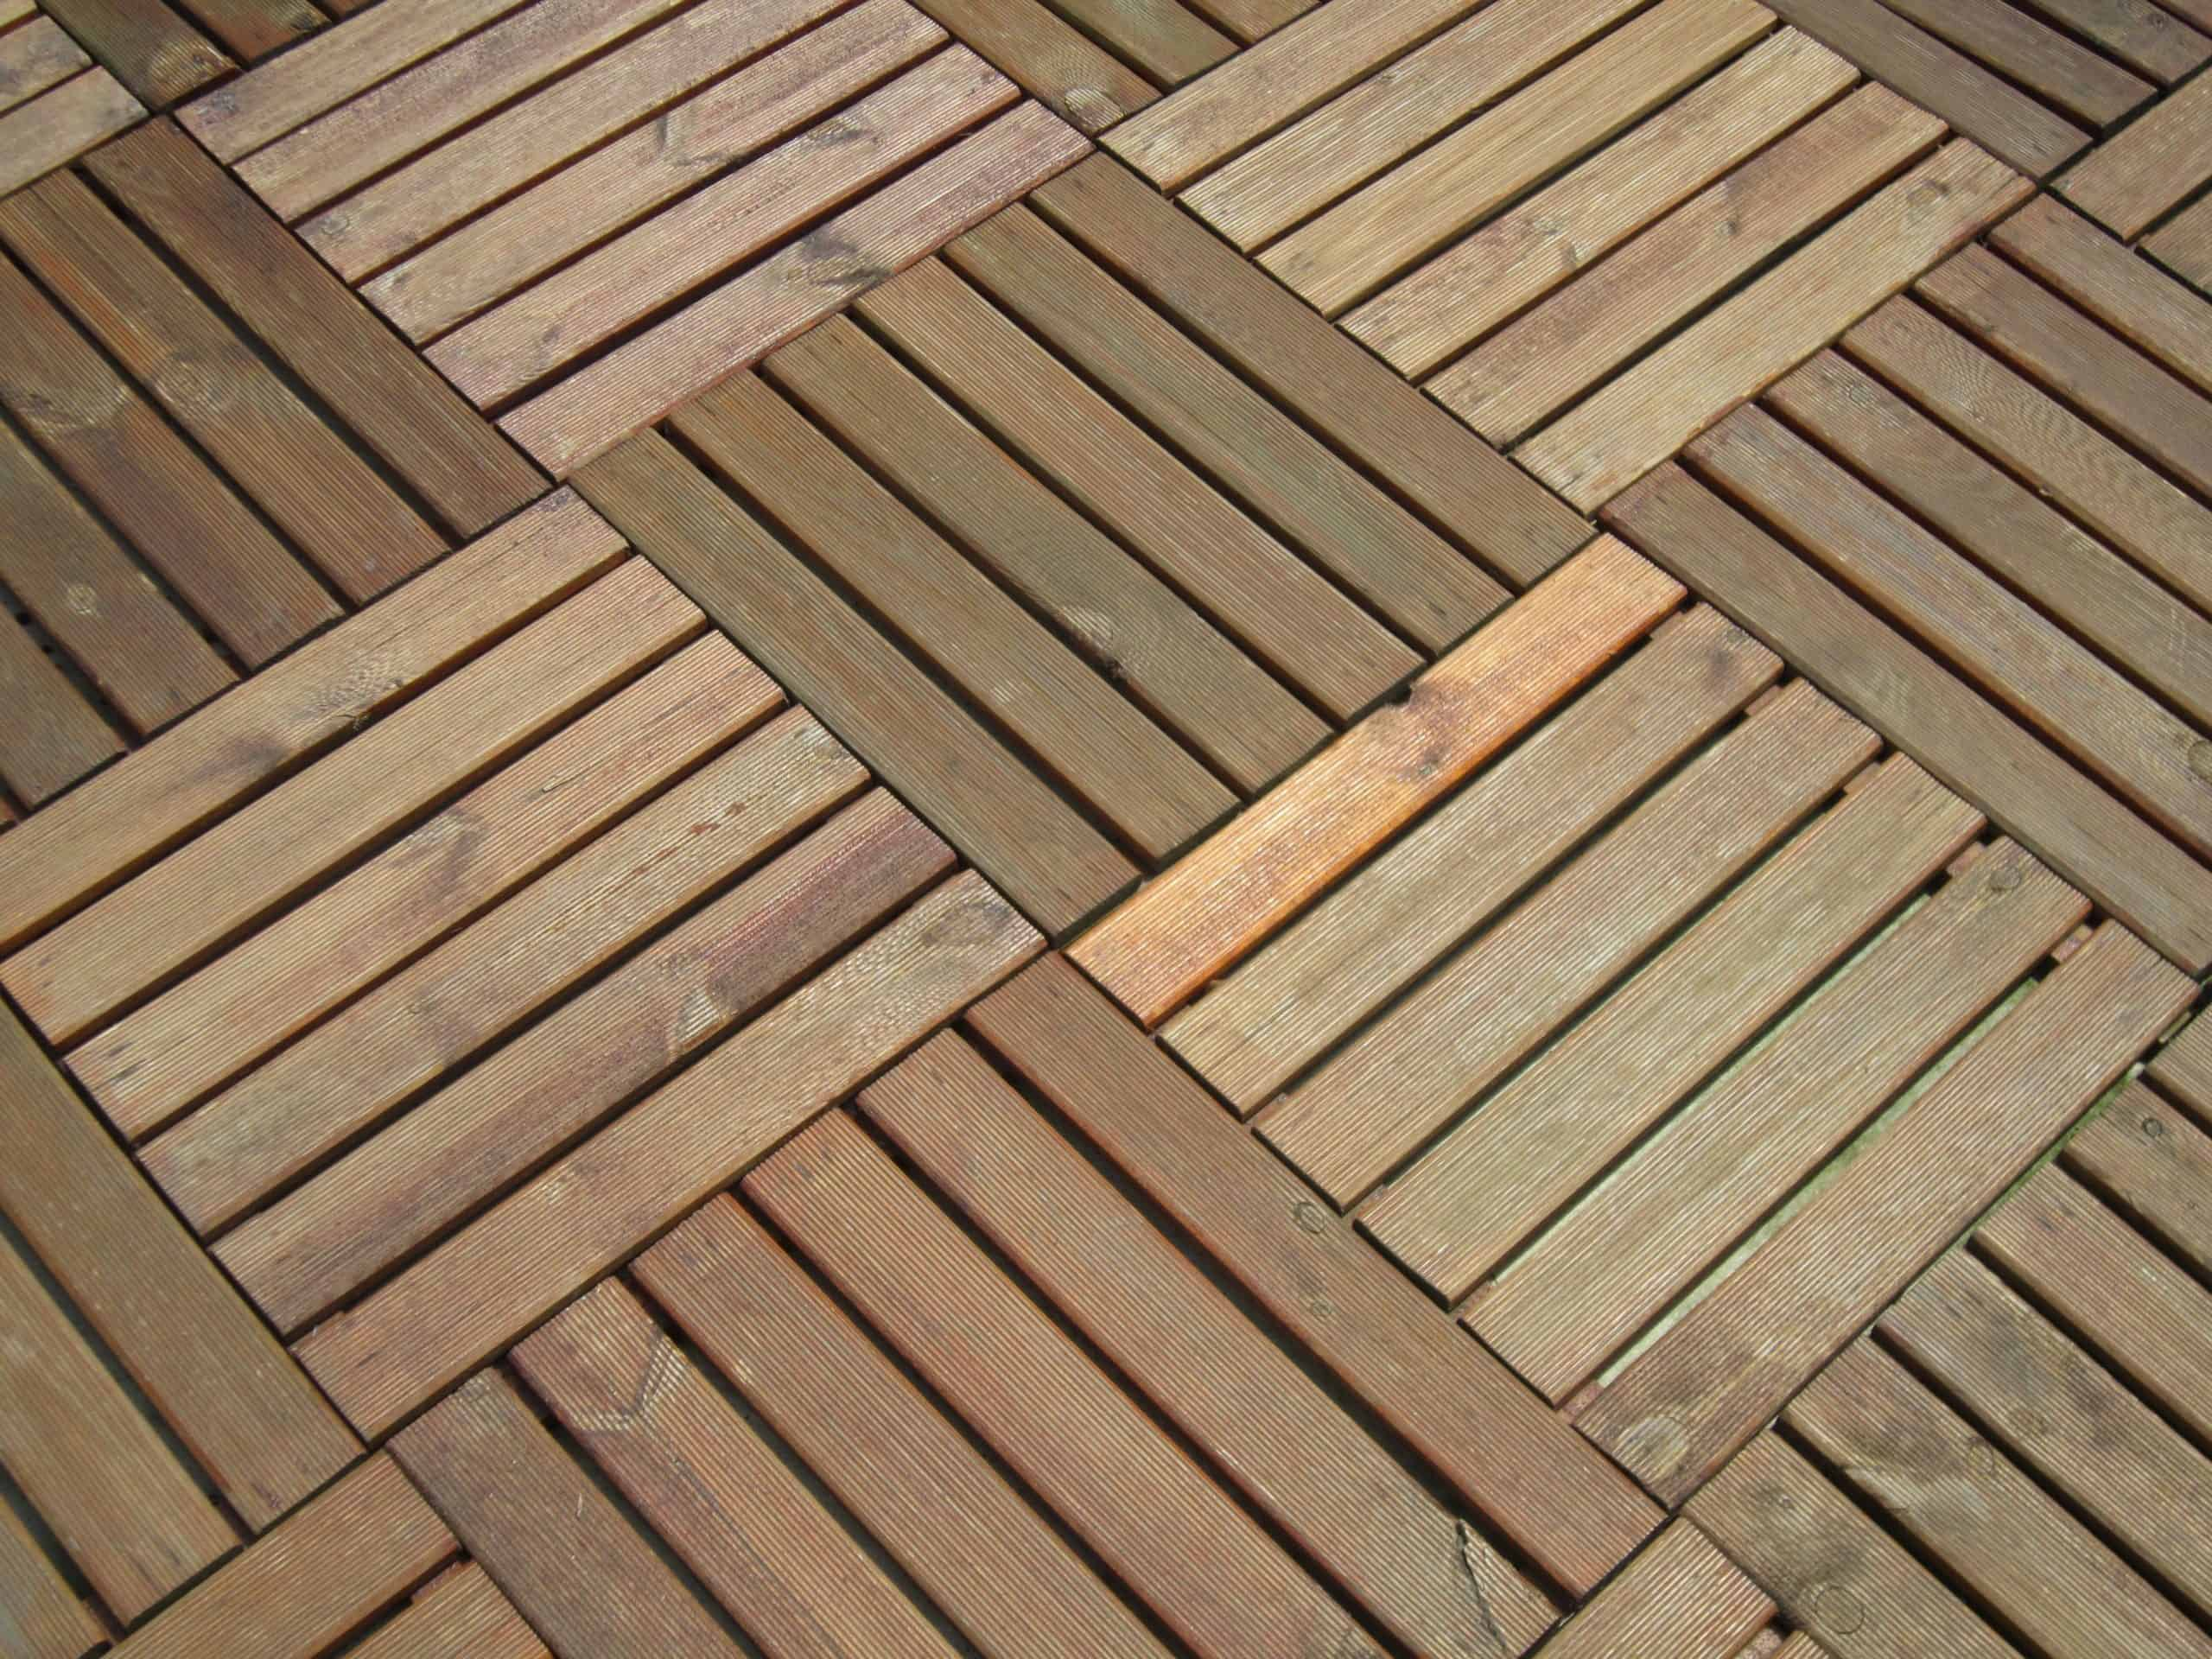 surface to use under hot tub, wooden tiles